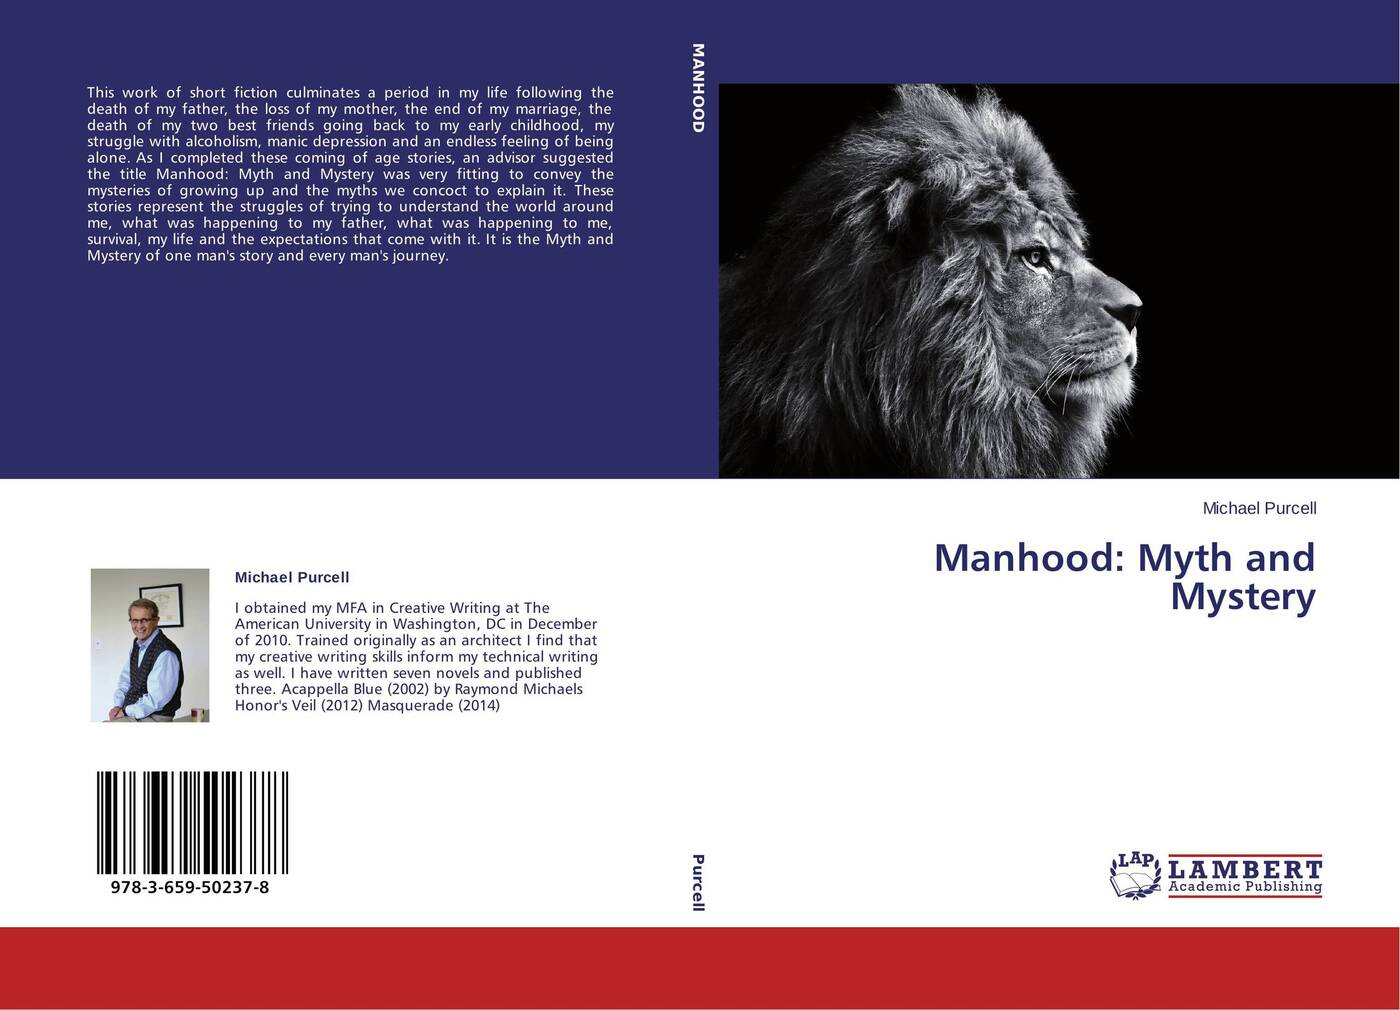 Michael Purcell Manhood: Myth and Mystery